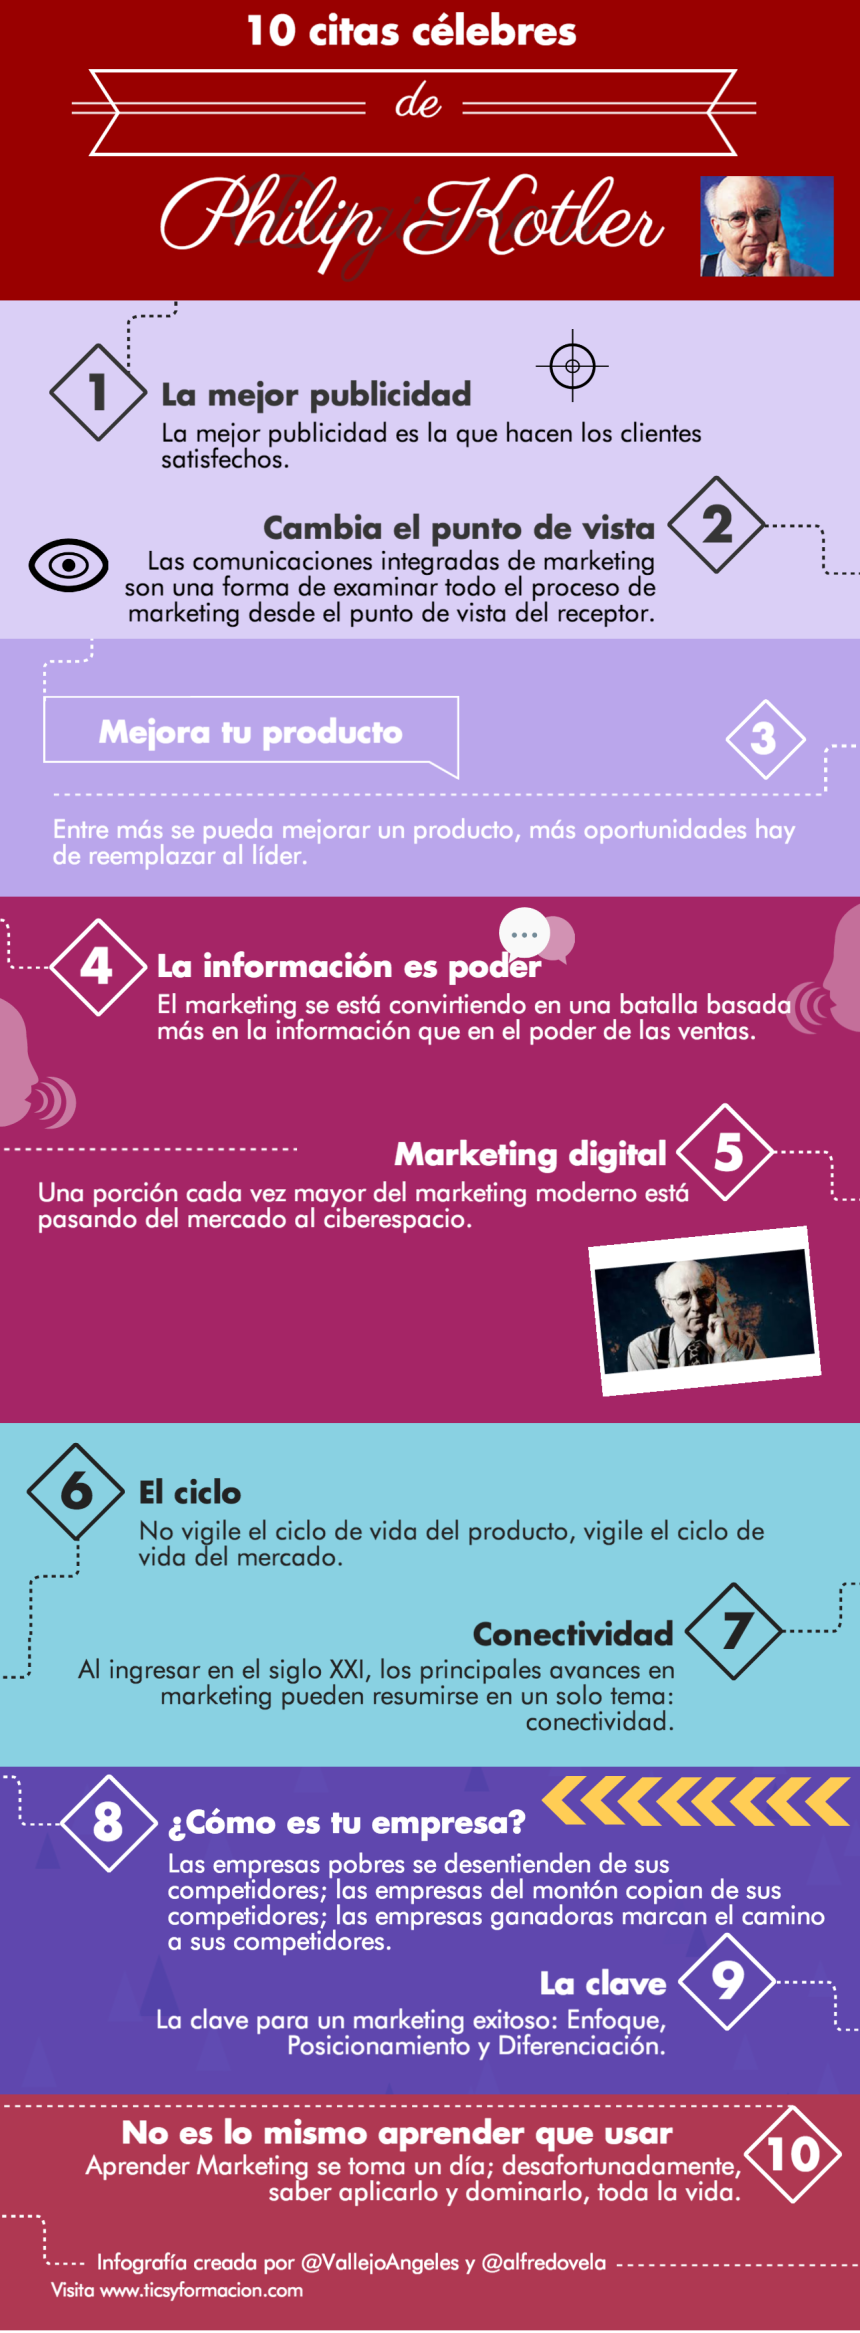 frases célebres de marketing digital: Philip Kotler